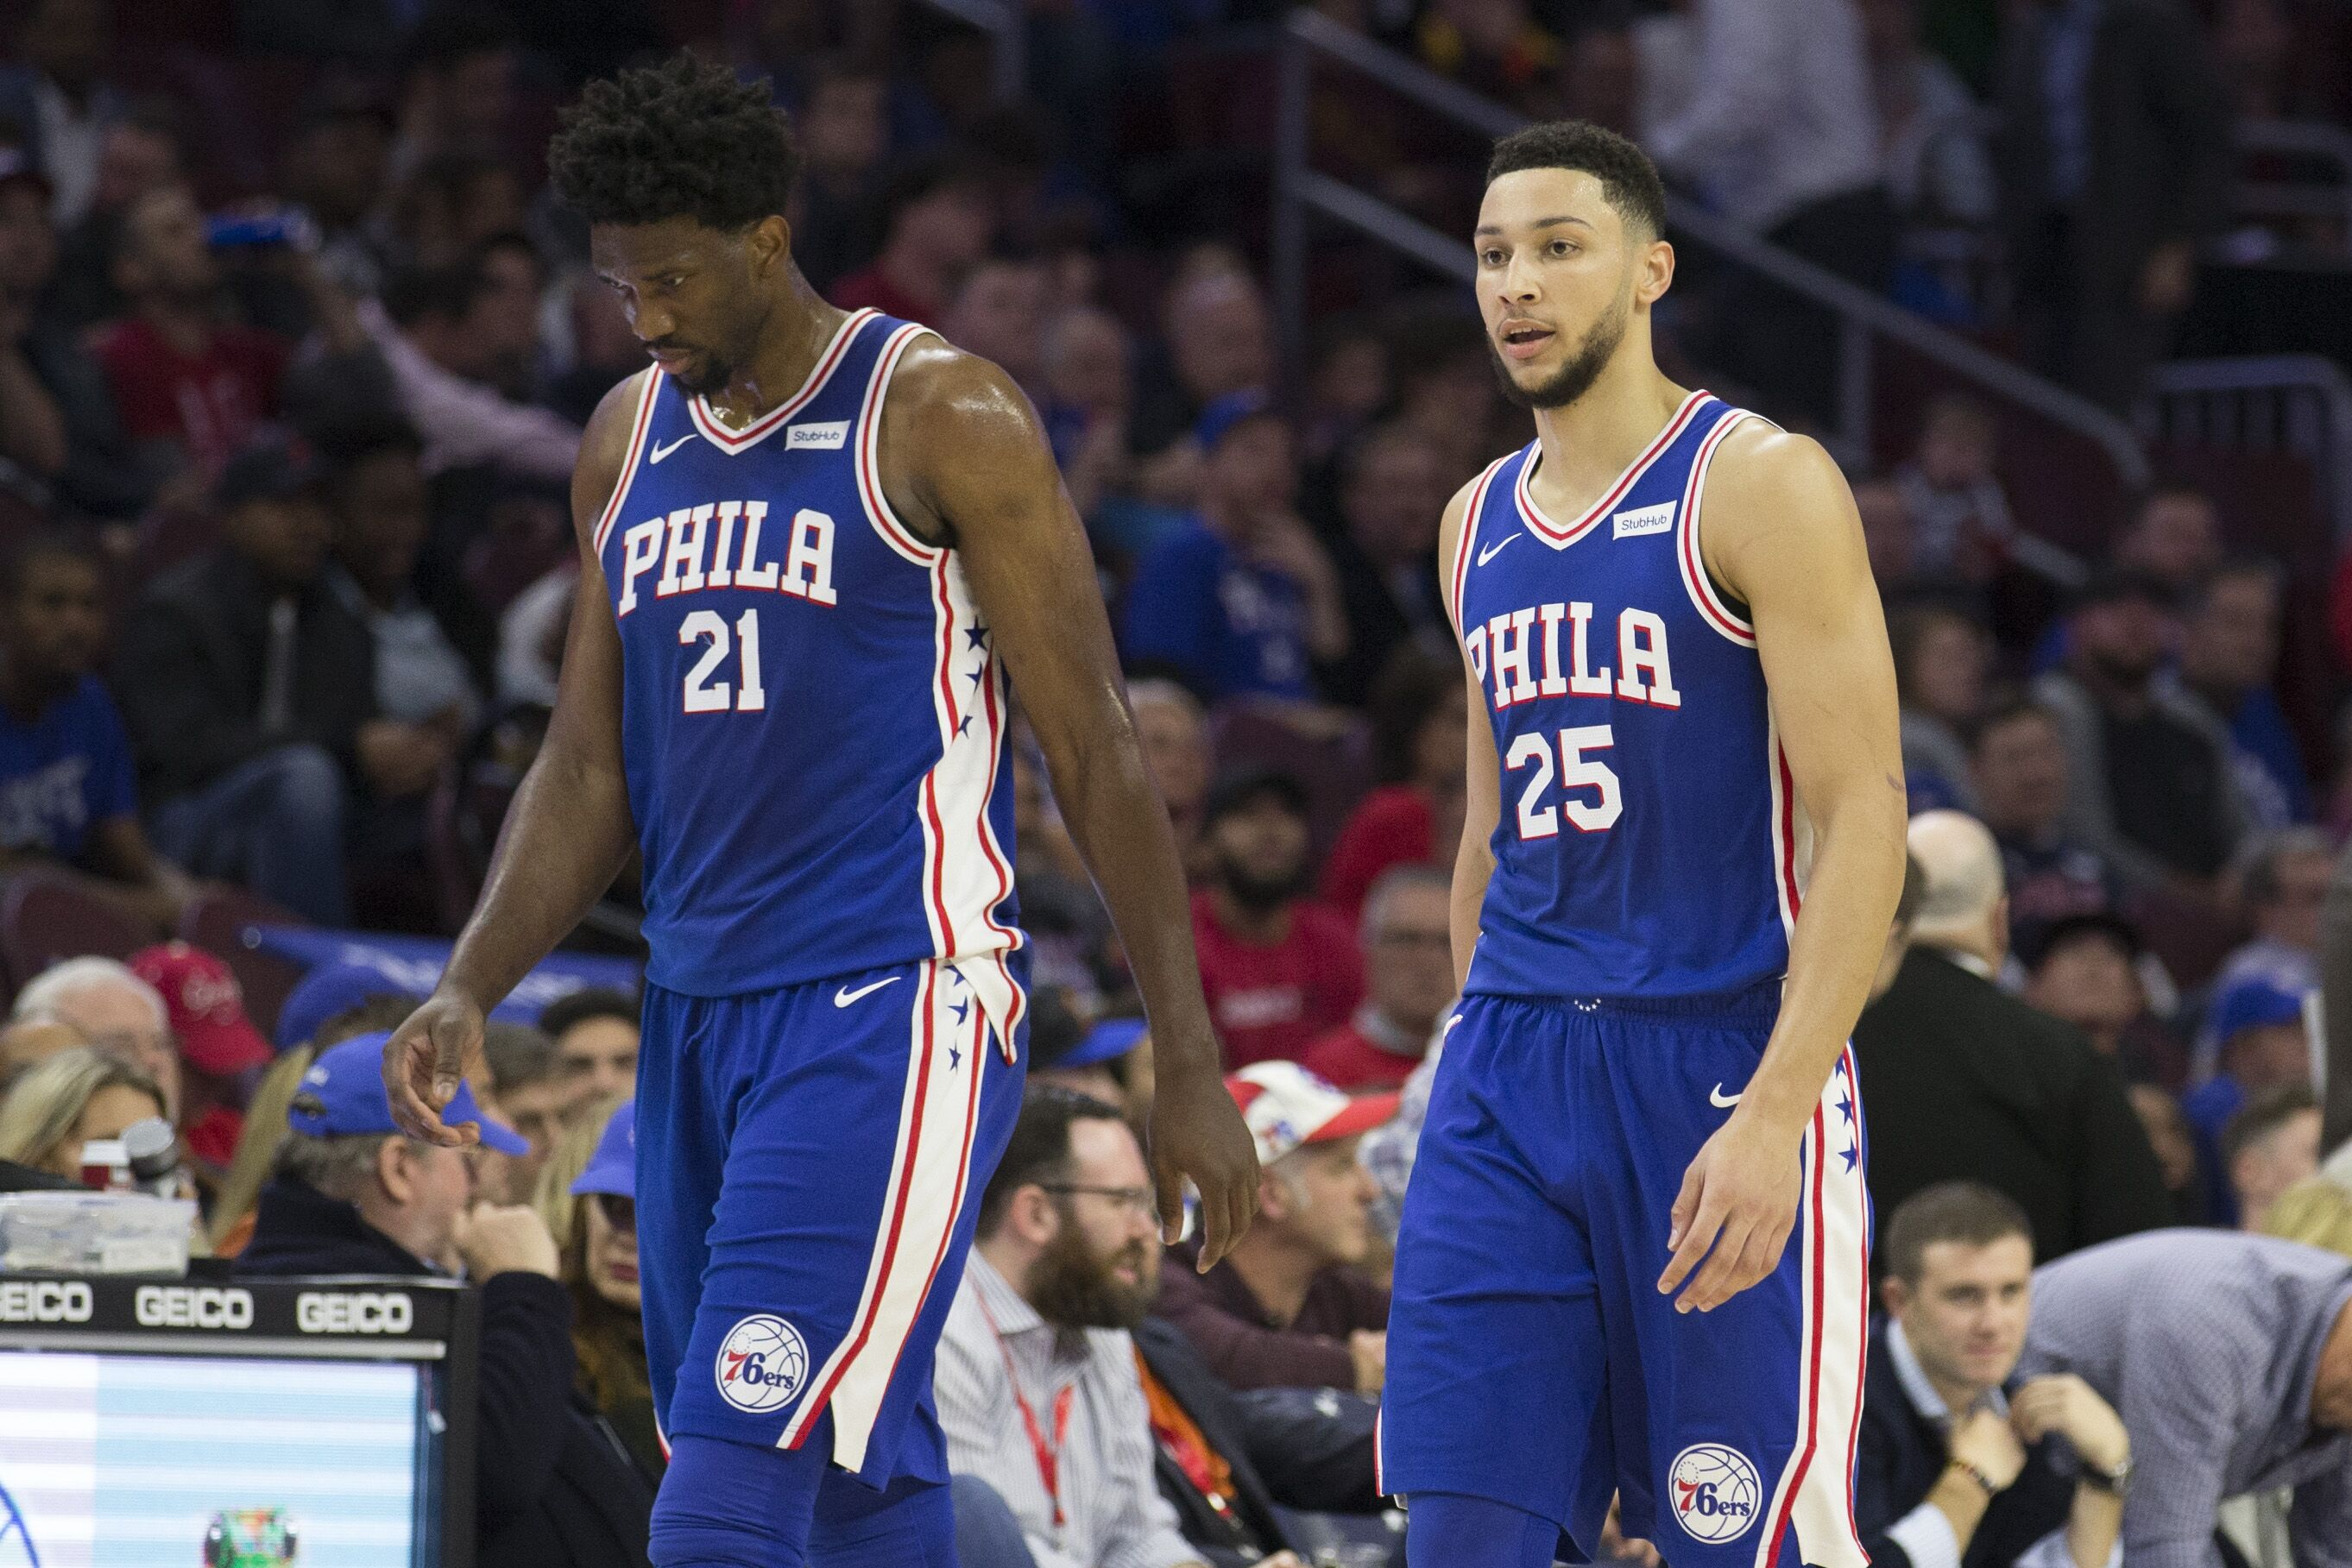 76ers: Philadelphia 76ers: Why A 4-4 Record Is Good For The Sixers